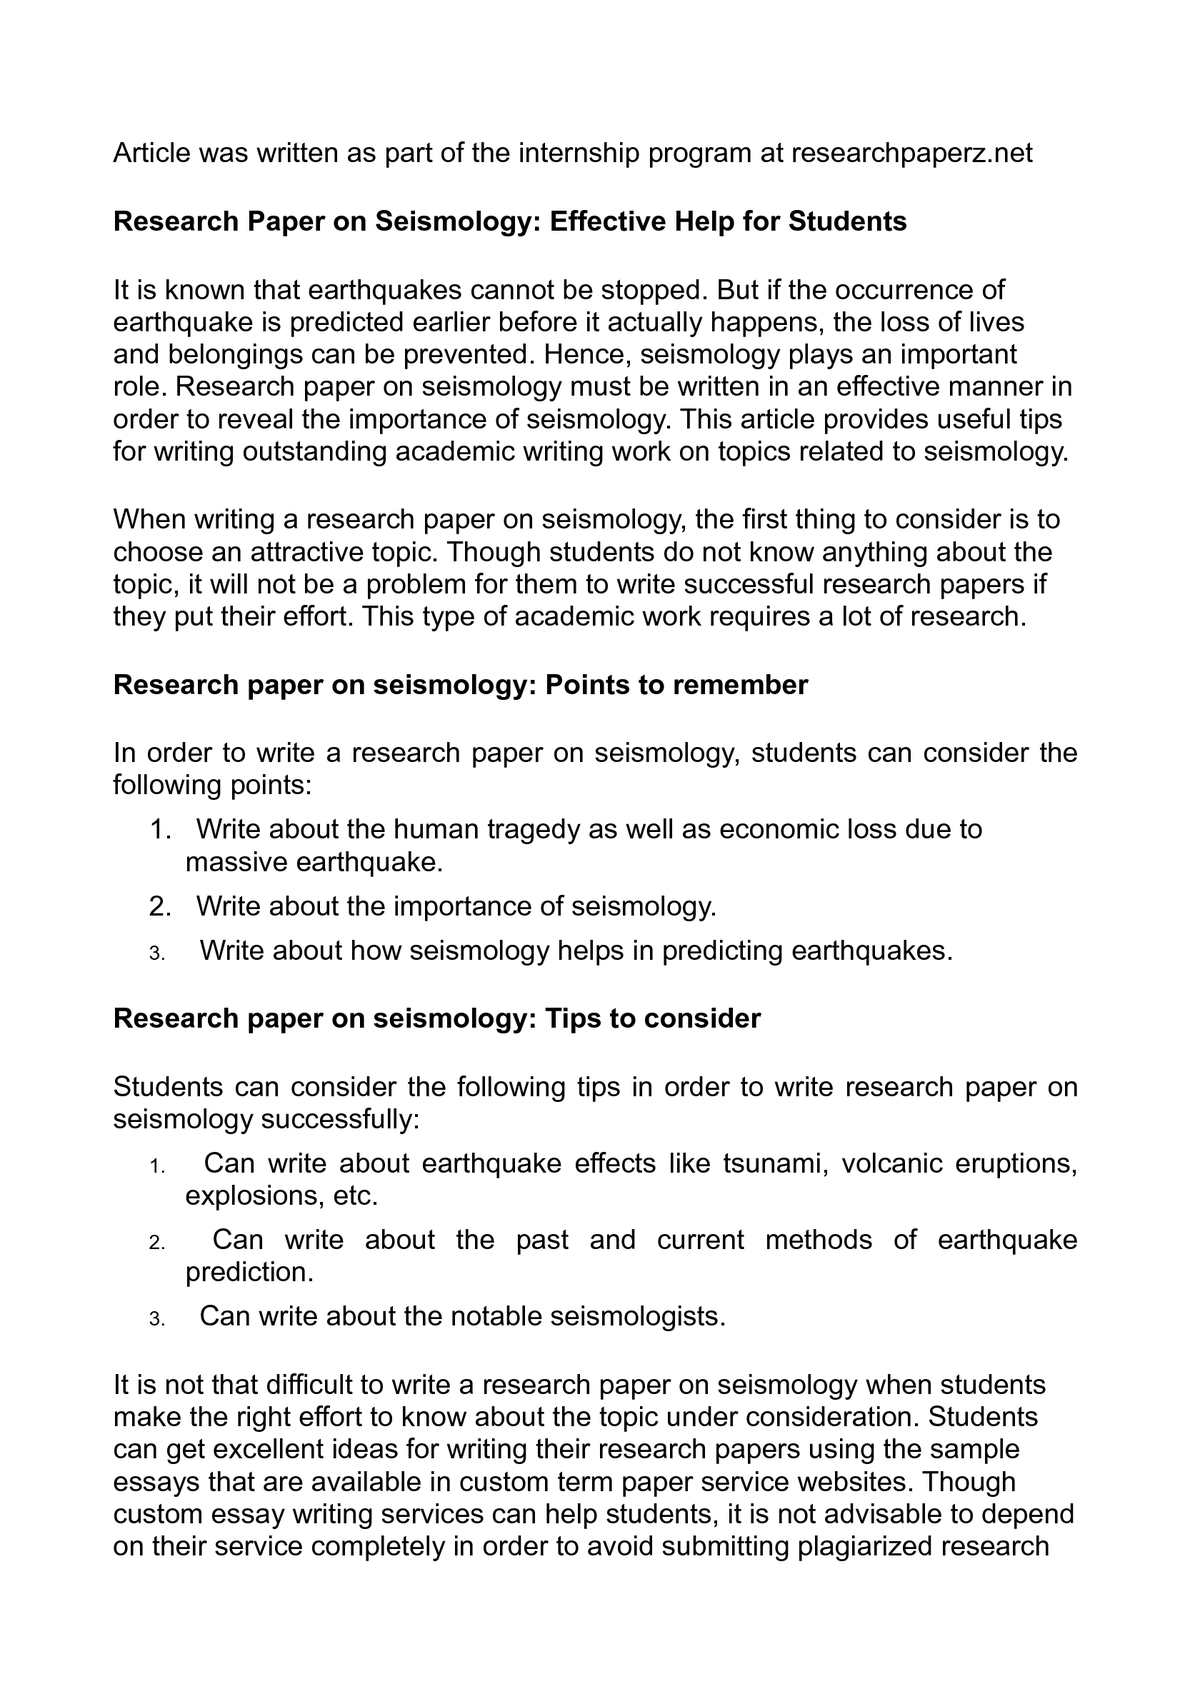 006 Research Paper Order Of Writing Impressive A Correct Sequence Steps For Full